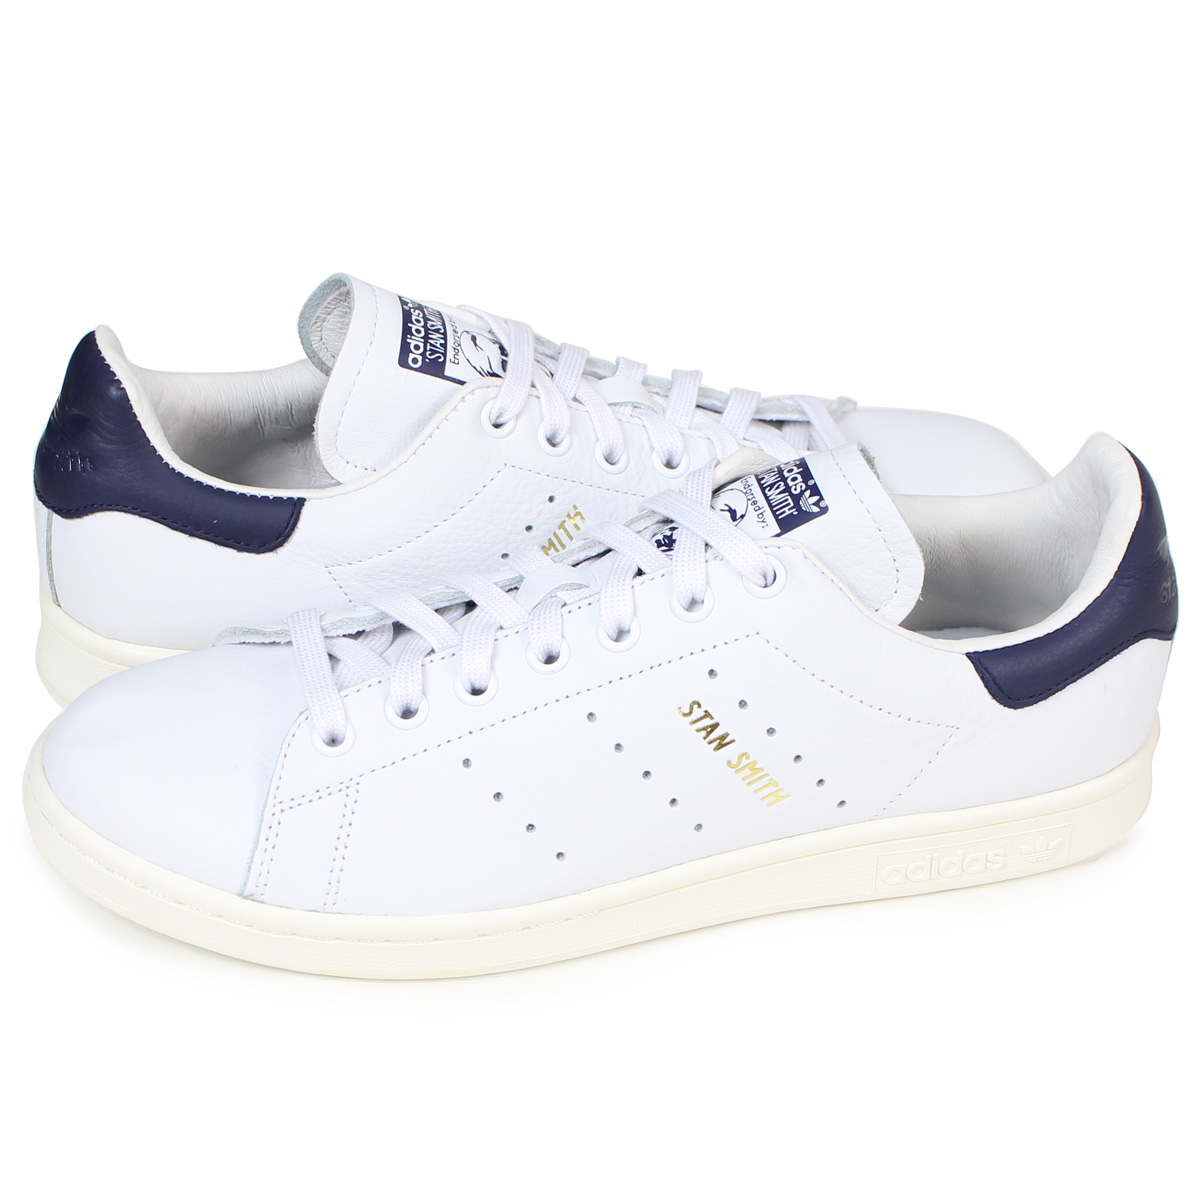 finest selection e8692 aa03a adidas Originals STAN SMITH Adidas originals Stan Smith sneakers men gap  Dis white white CQ2870 [the 8/21 additional arrival]